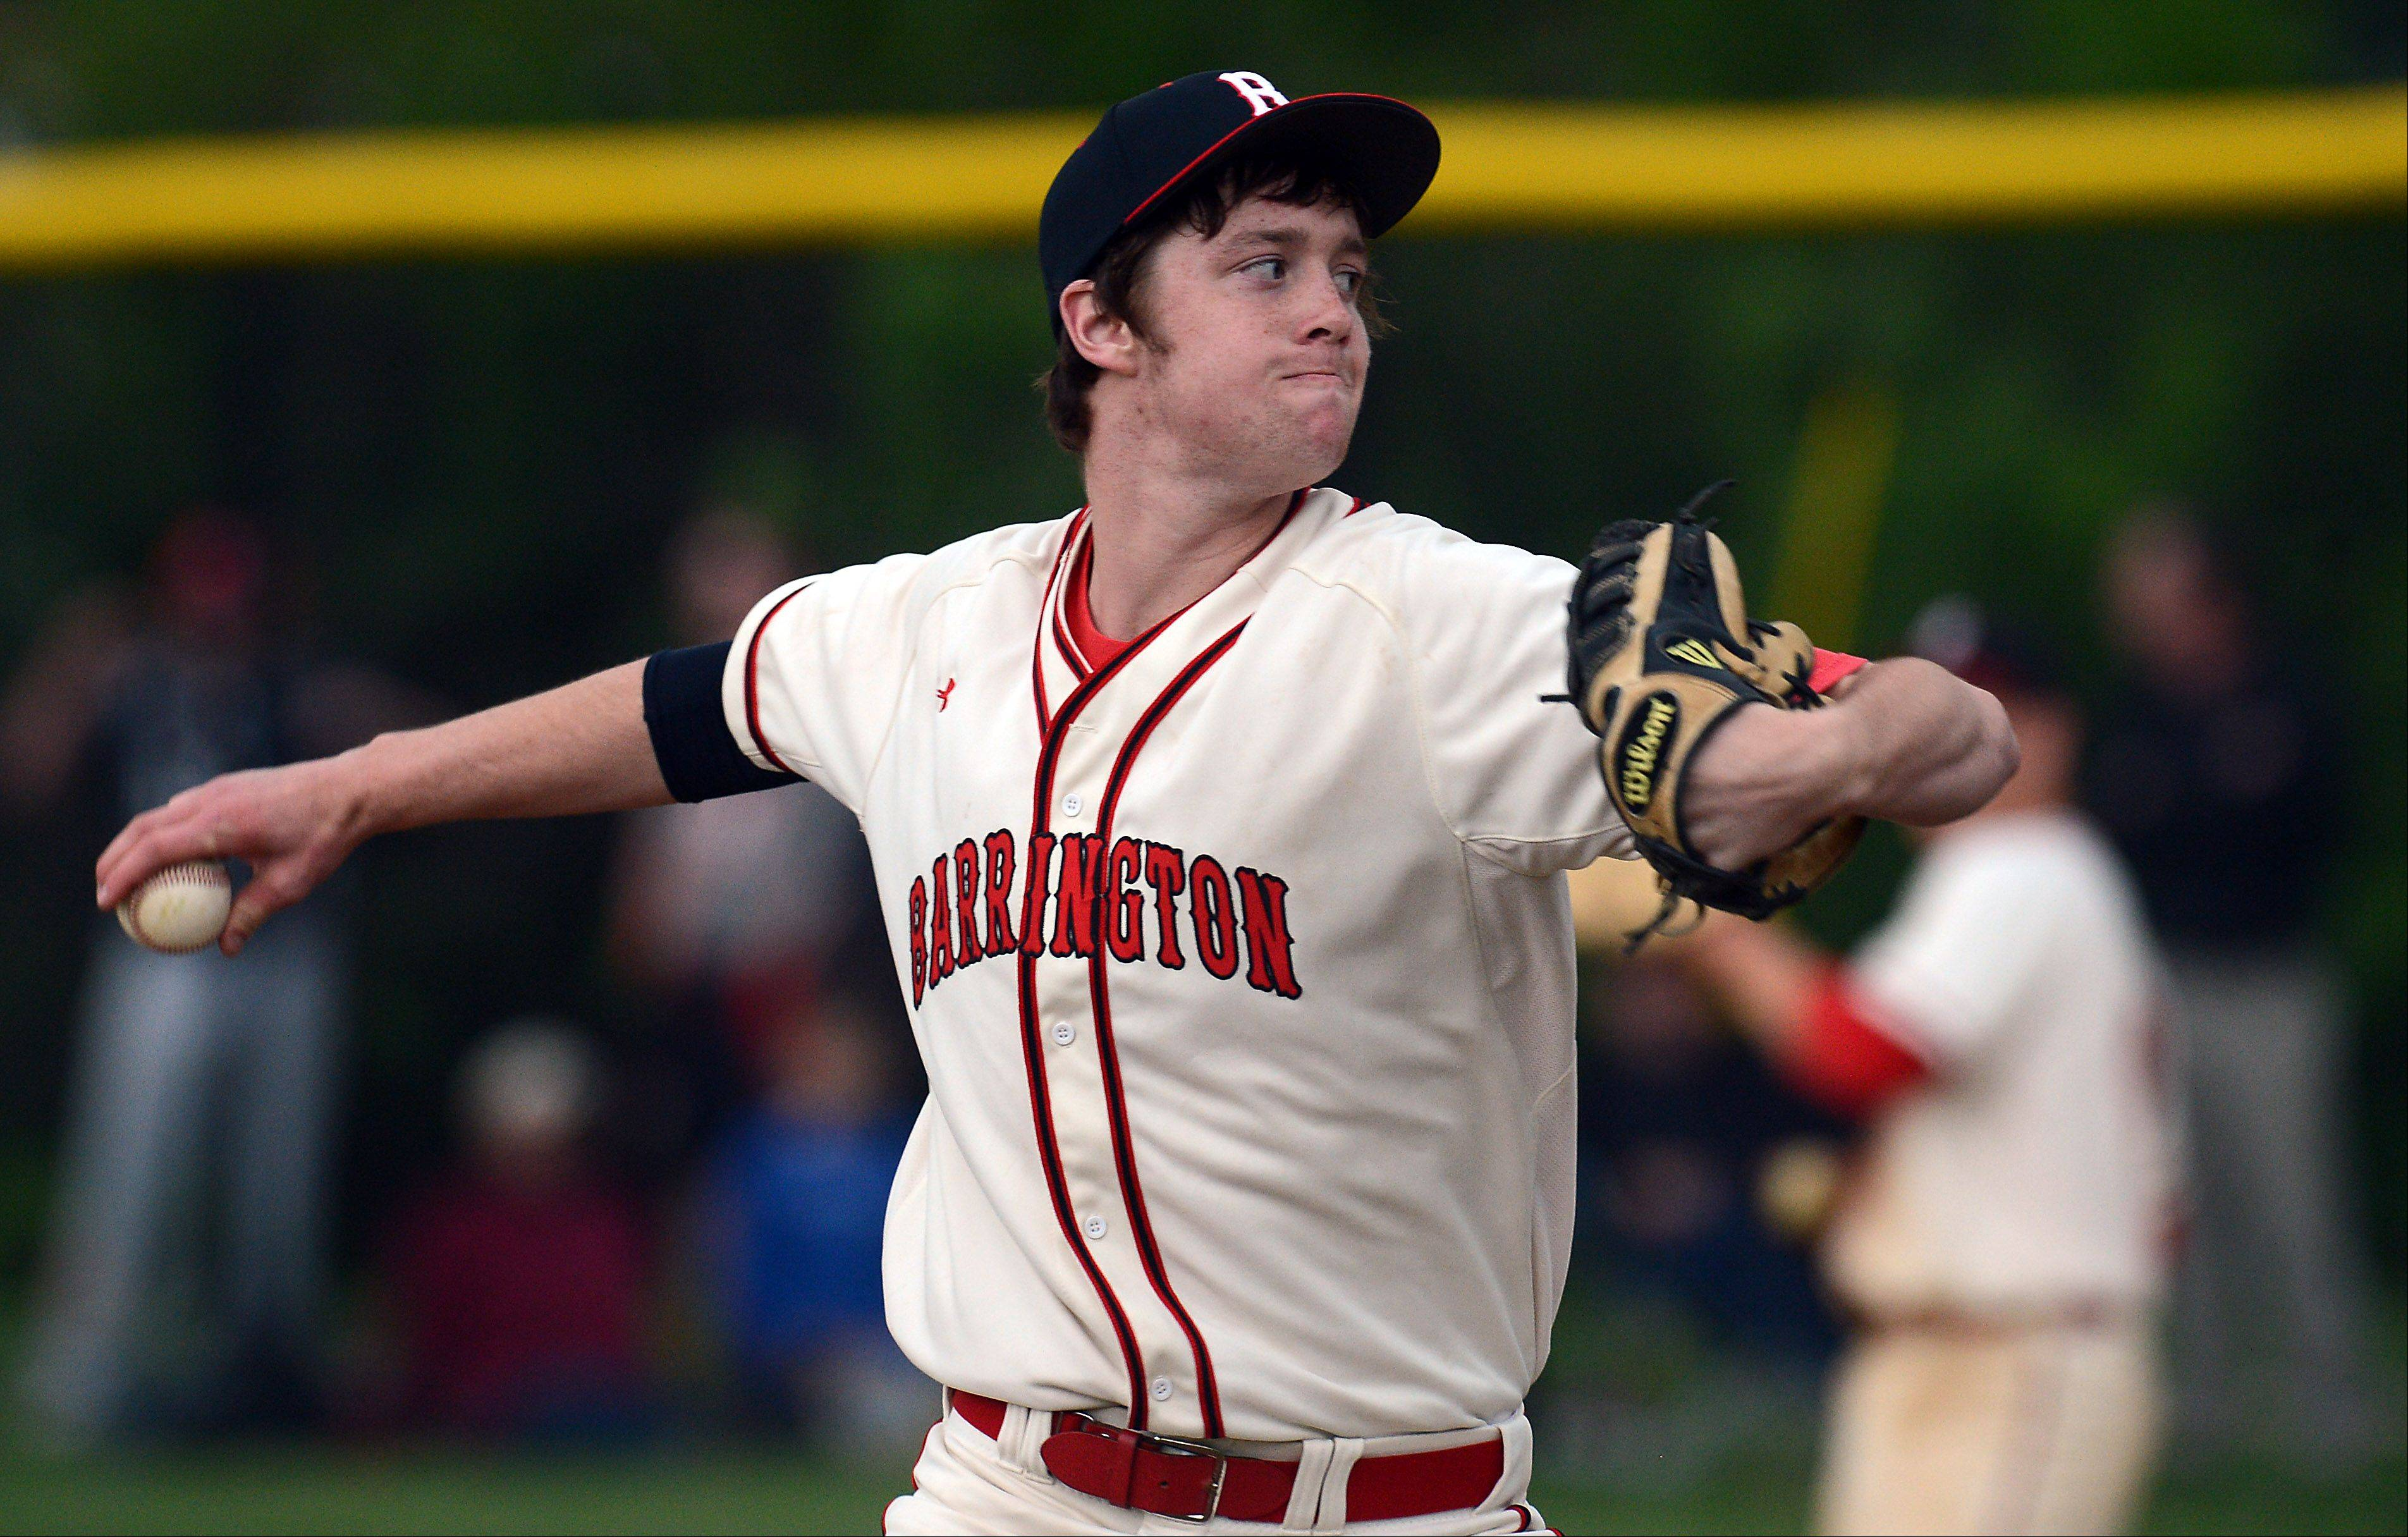 Barrington's pitcher Wyatt Trautwein delivers against Rolling Meadows in Friday's MSL championship game.